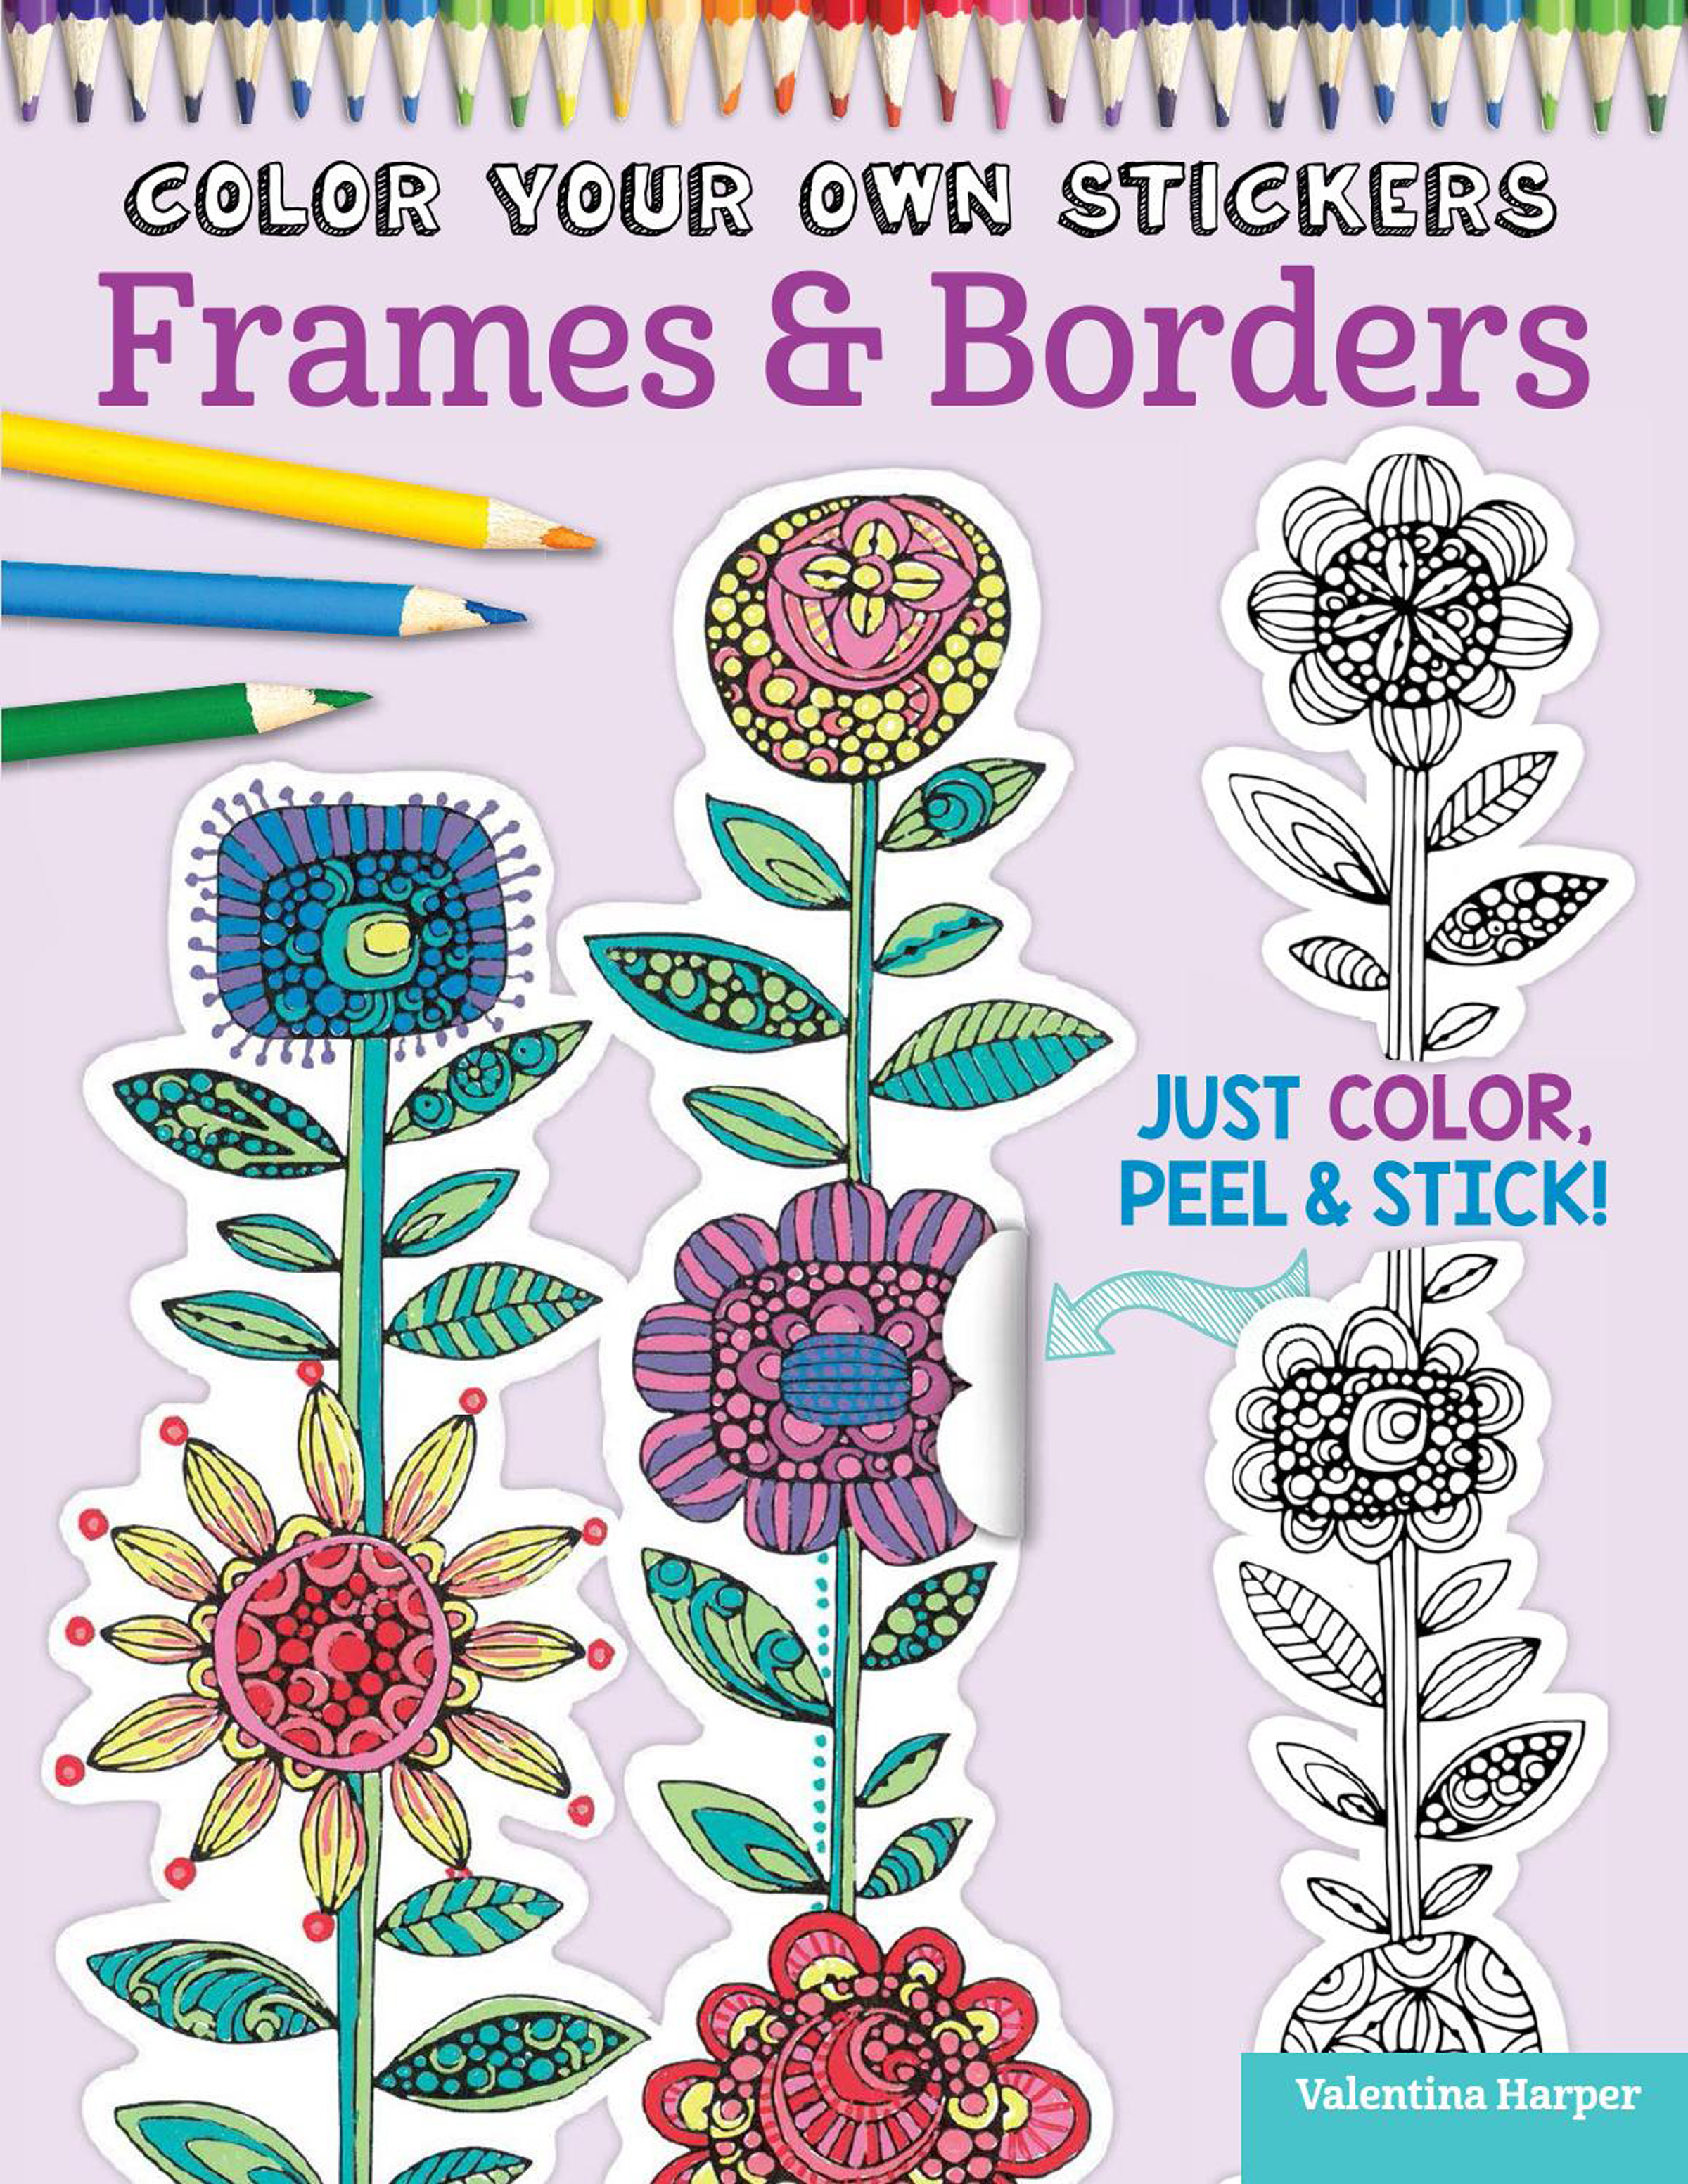 Color Your Own Stickers FrameBorder Coloring Book CreateForLess